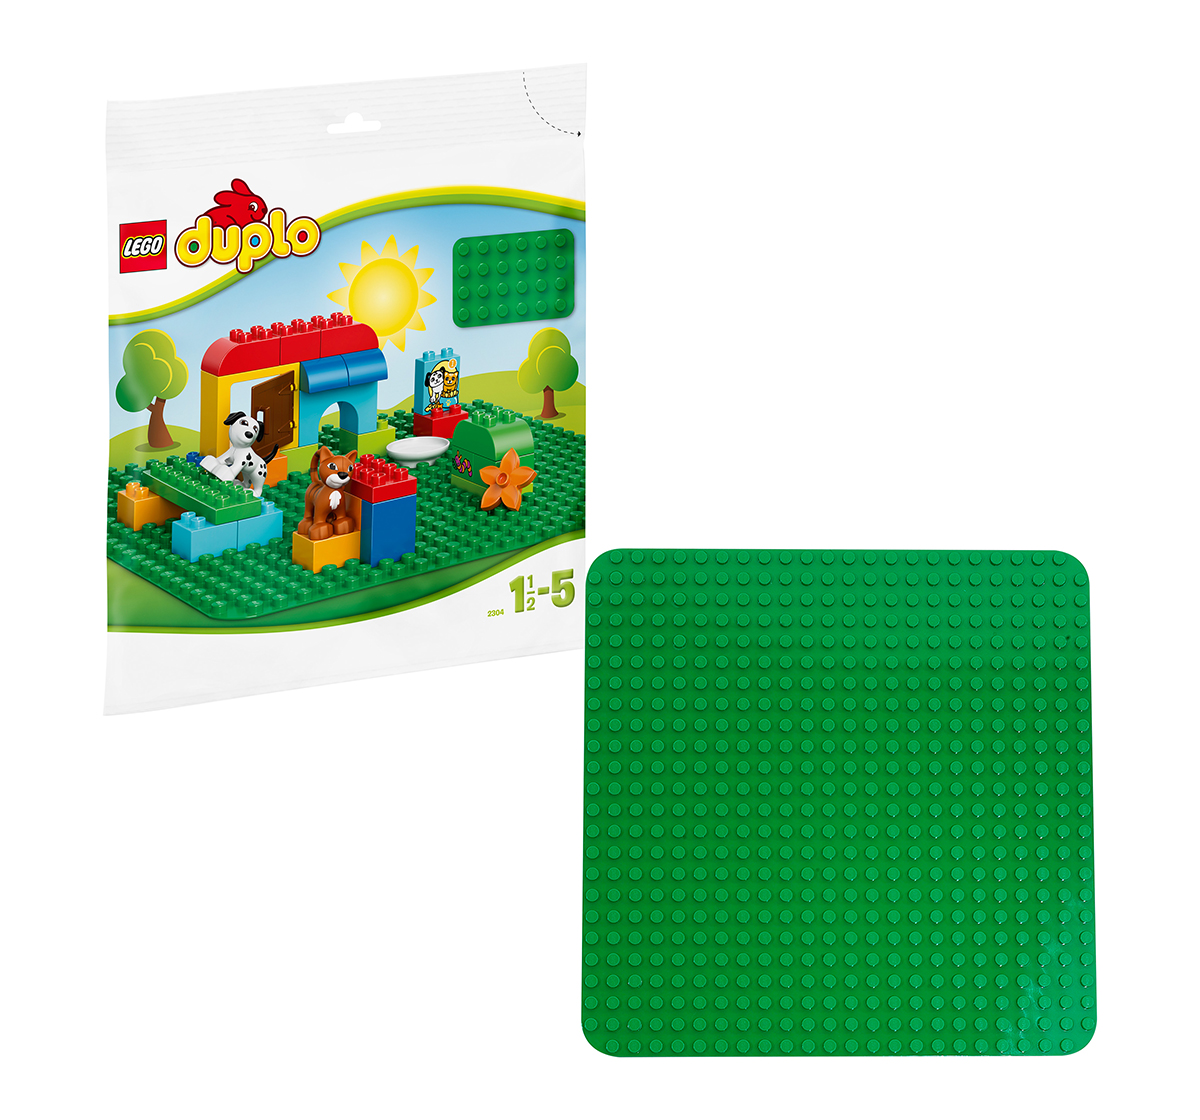 LEGO   LEGO® DUPLO® Large Green Building Plate Lego Blocks for Kids age 18M + (Green)